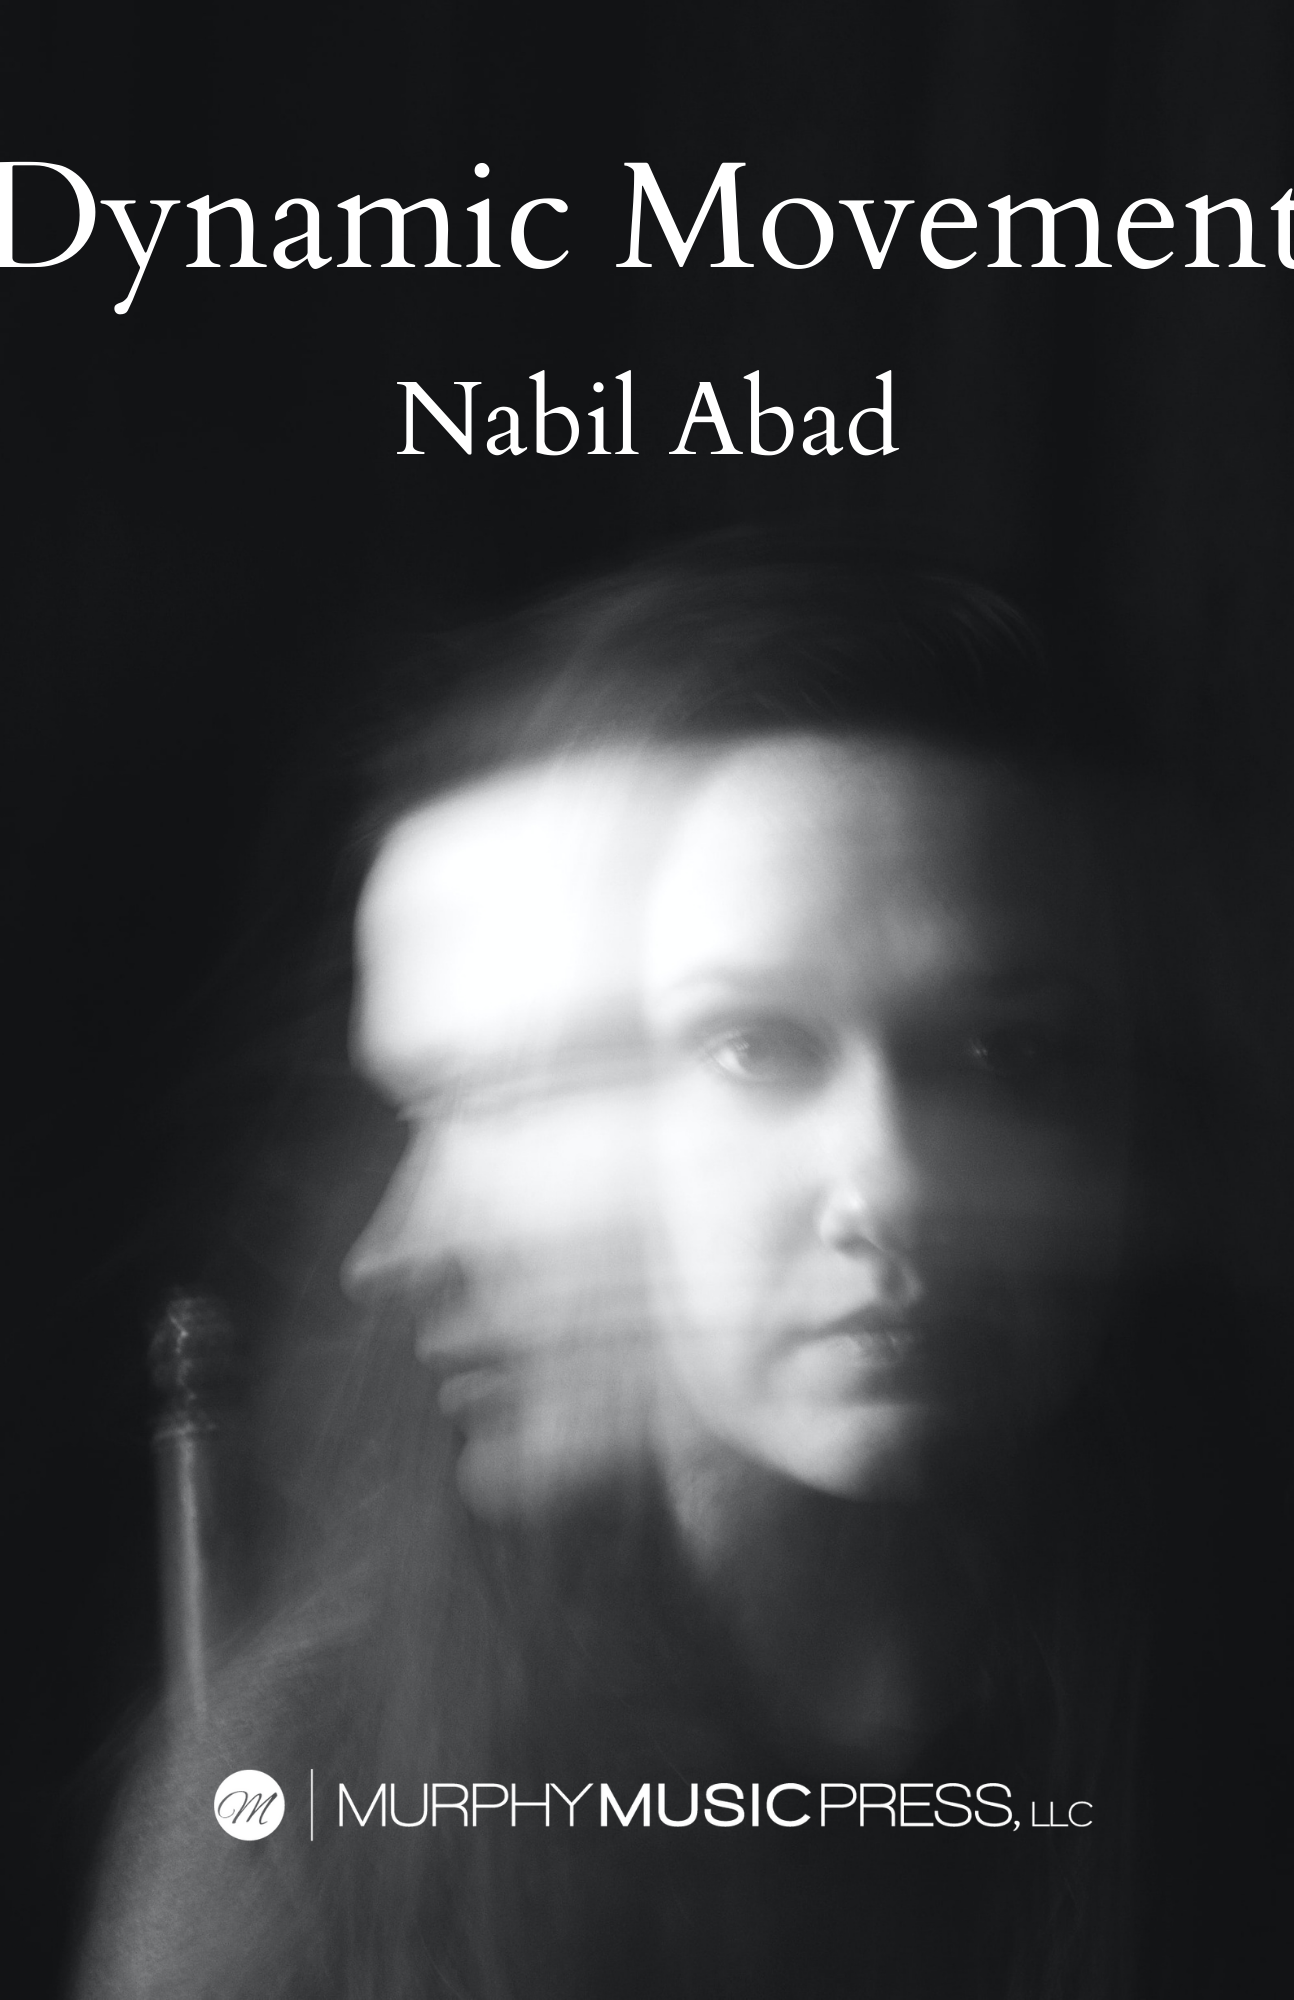 Dynamic Movement by Nabil Abad